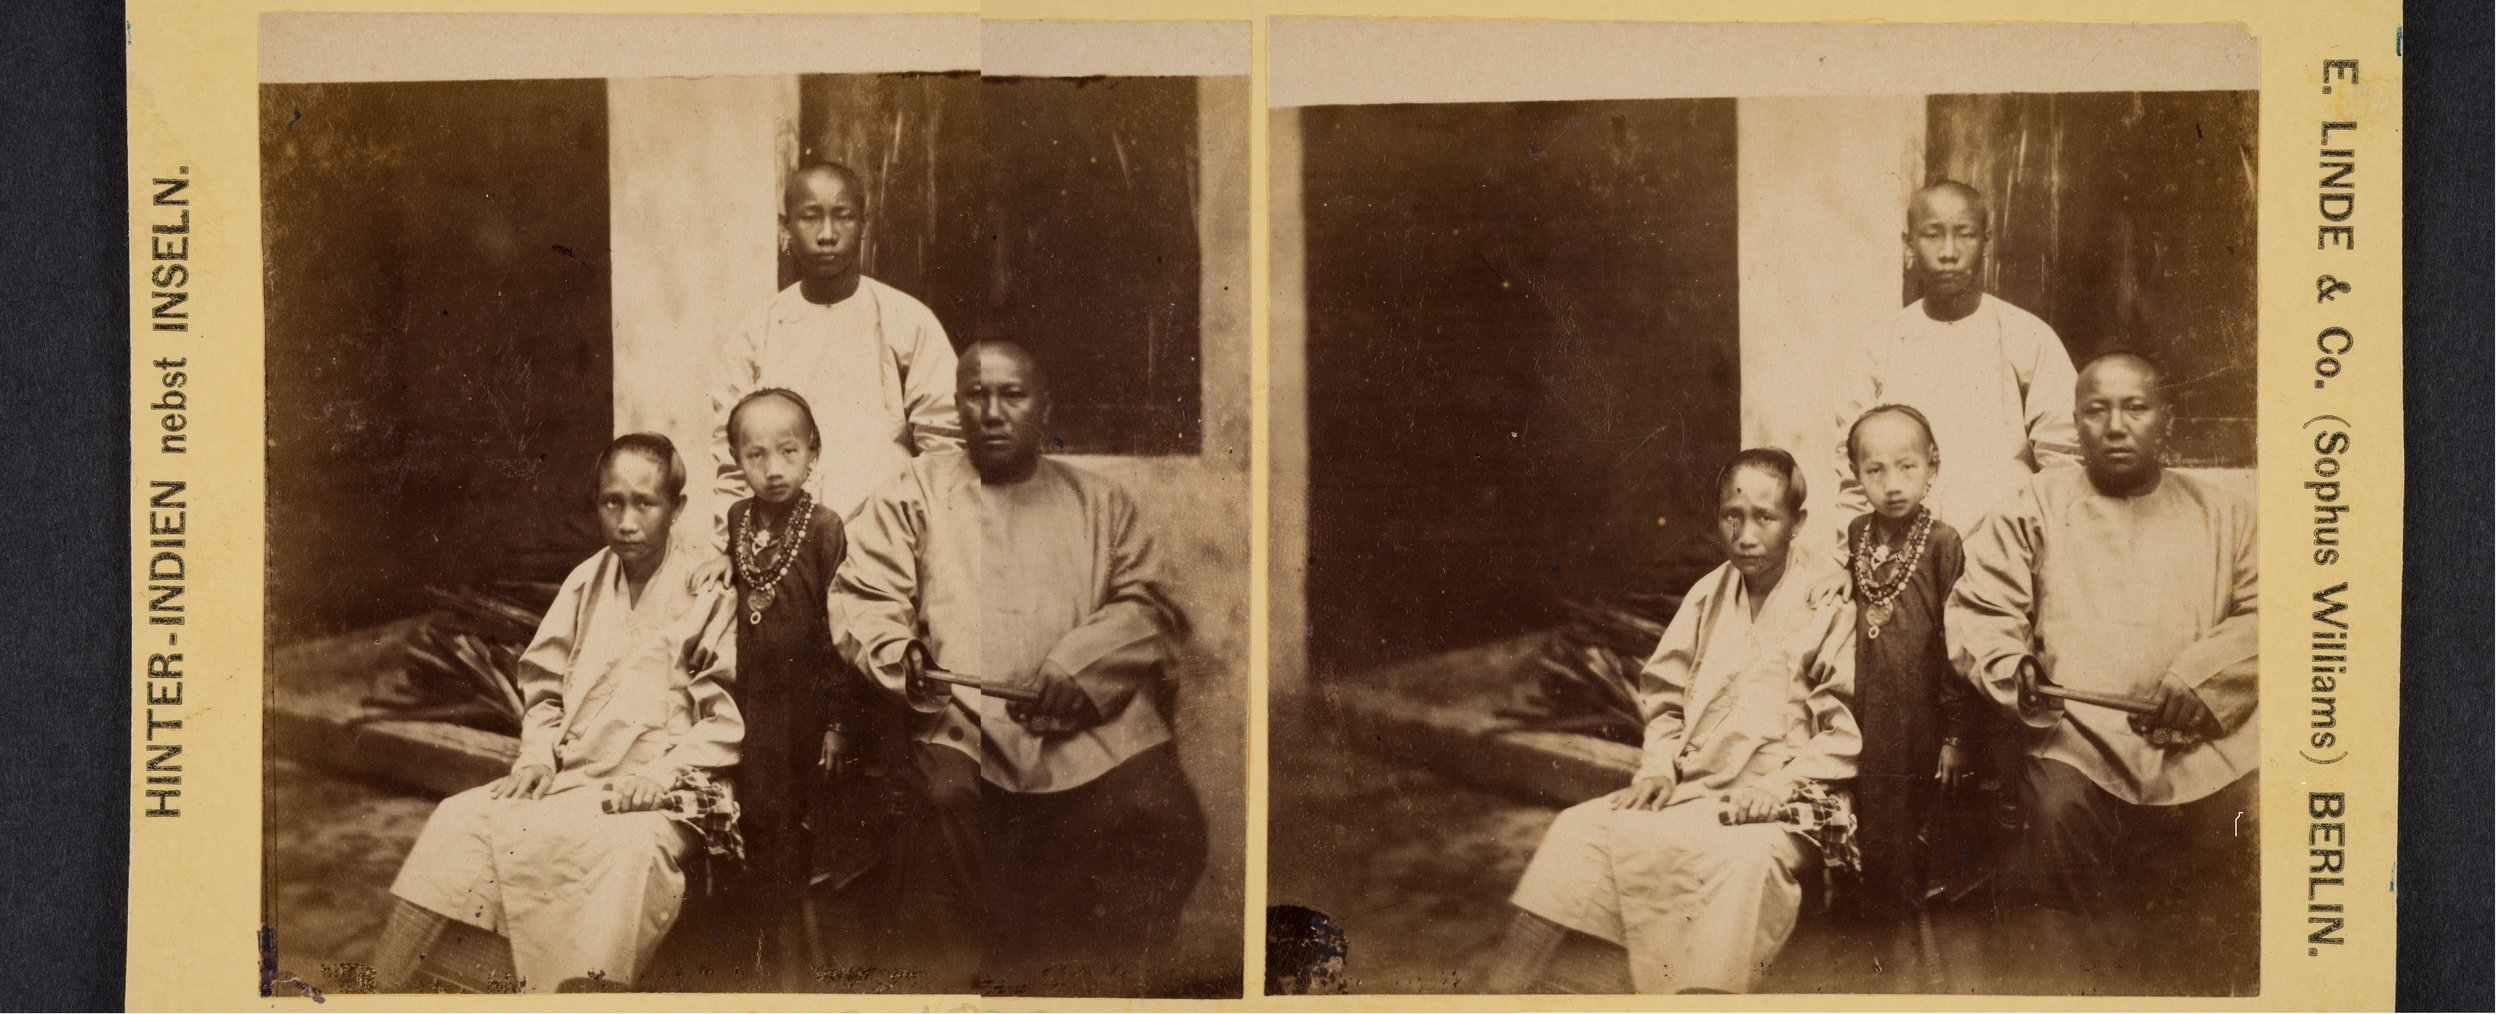 Tan Kim Ching and Family , Fedor Jagor Peranakan Museum, c. 1857–58  Credit: Peranakan Museum, Gift of Mr and Mrs Lee Kip Lee